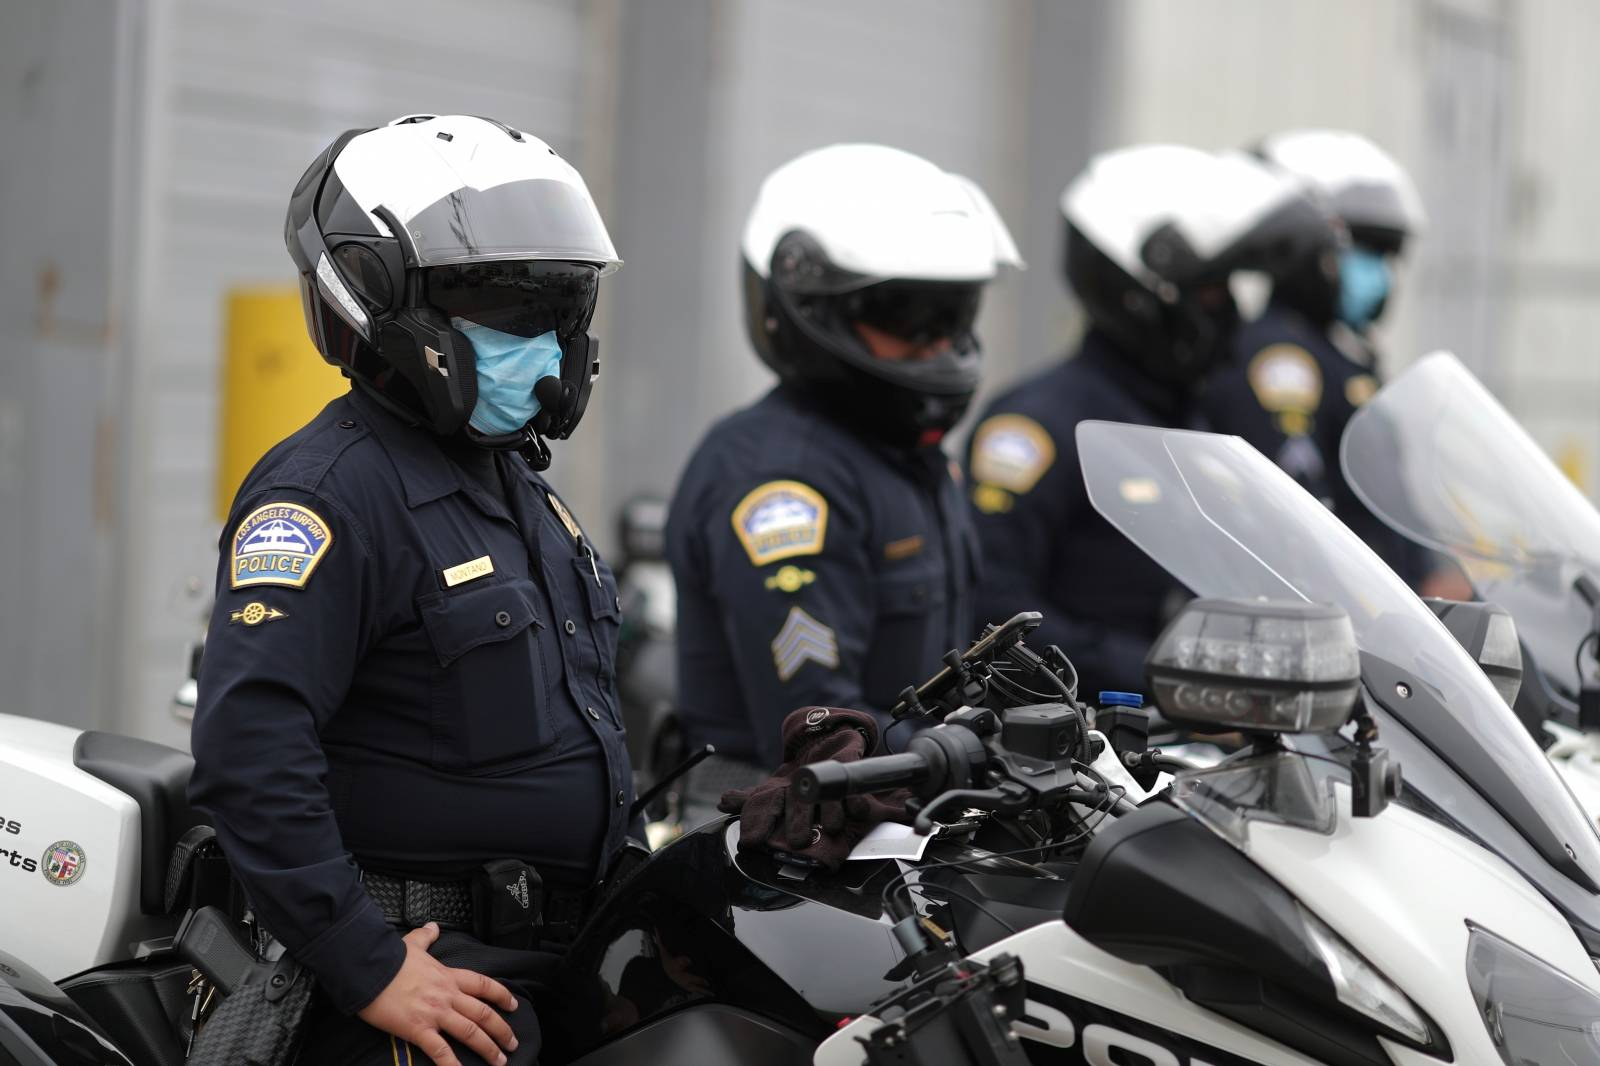 California Highway Patrol police officers wear masks as they watch hotel workers protesting outside airport hotels to demand healthcare coverage extension as the global outbreak of the coronavirus disease (COVID-19) continues, in Los Angeles